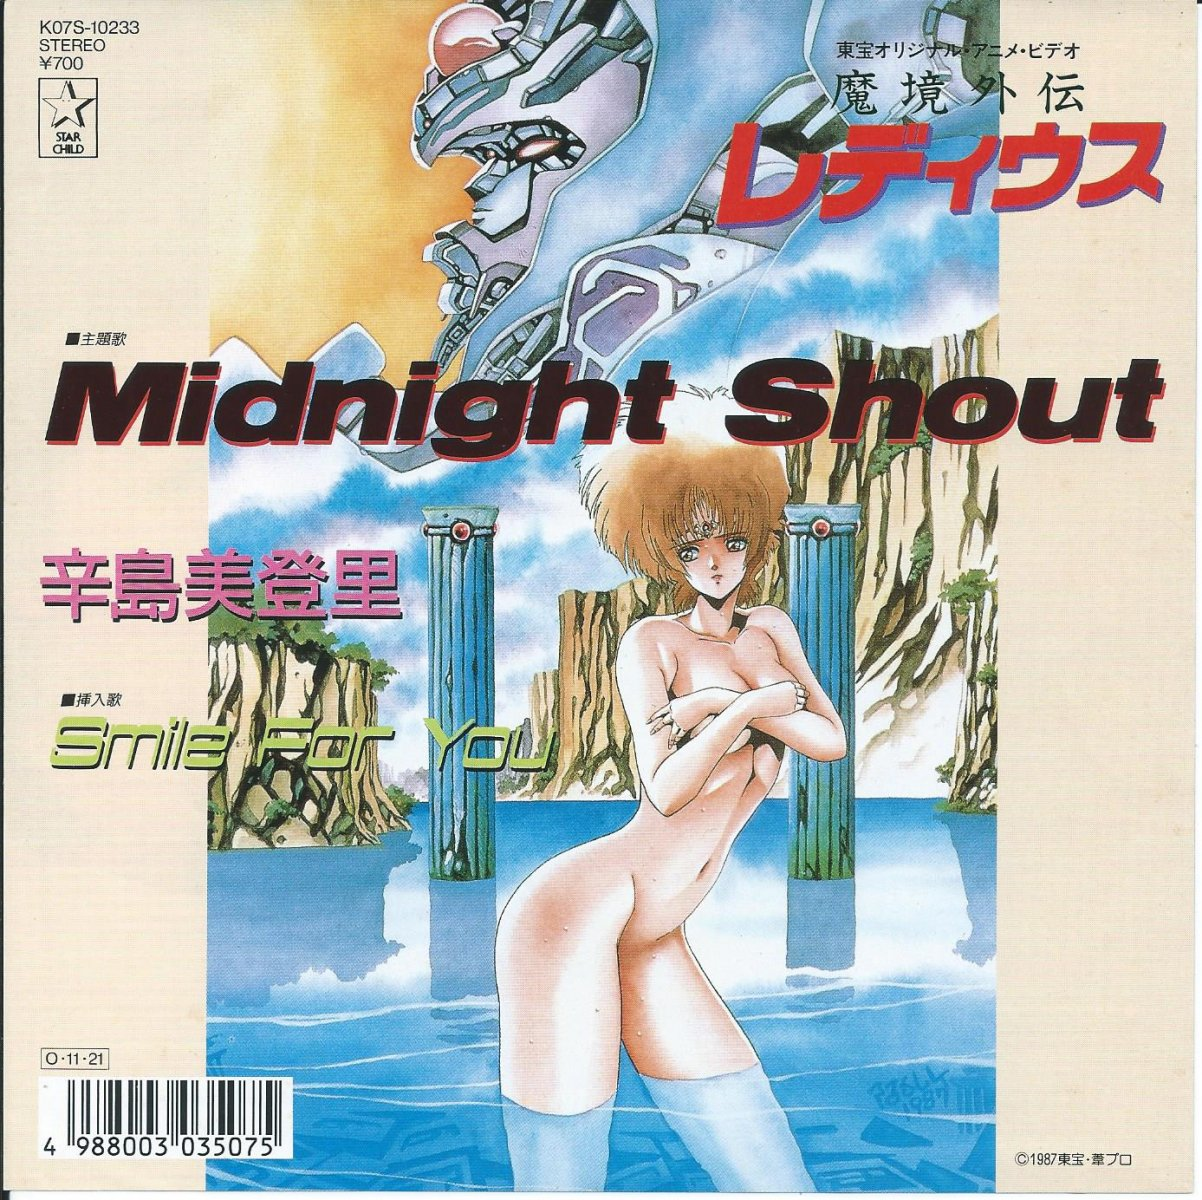 辛島美登里 MIDORI KARASHIMA / MIDNIGHT SHOUT / SMILE FOR YOU (魔境外伝レディウス) (7